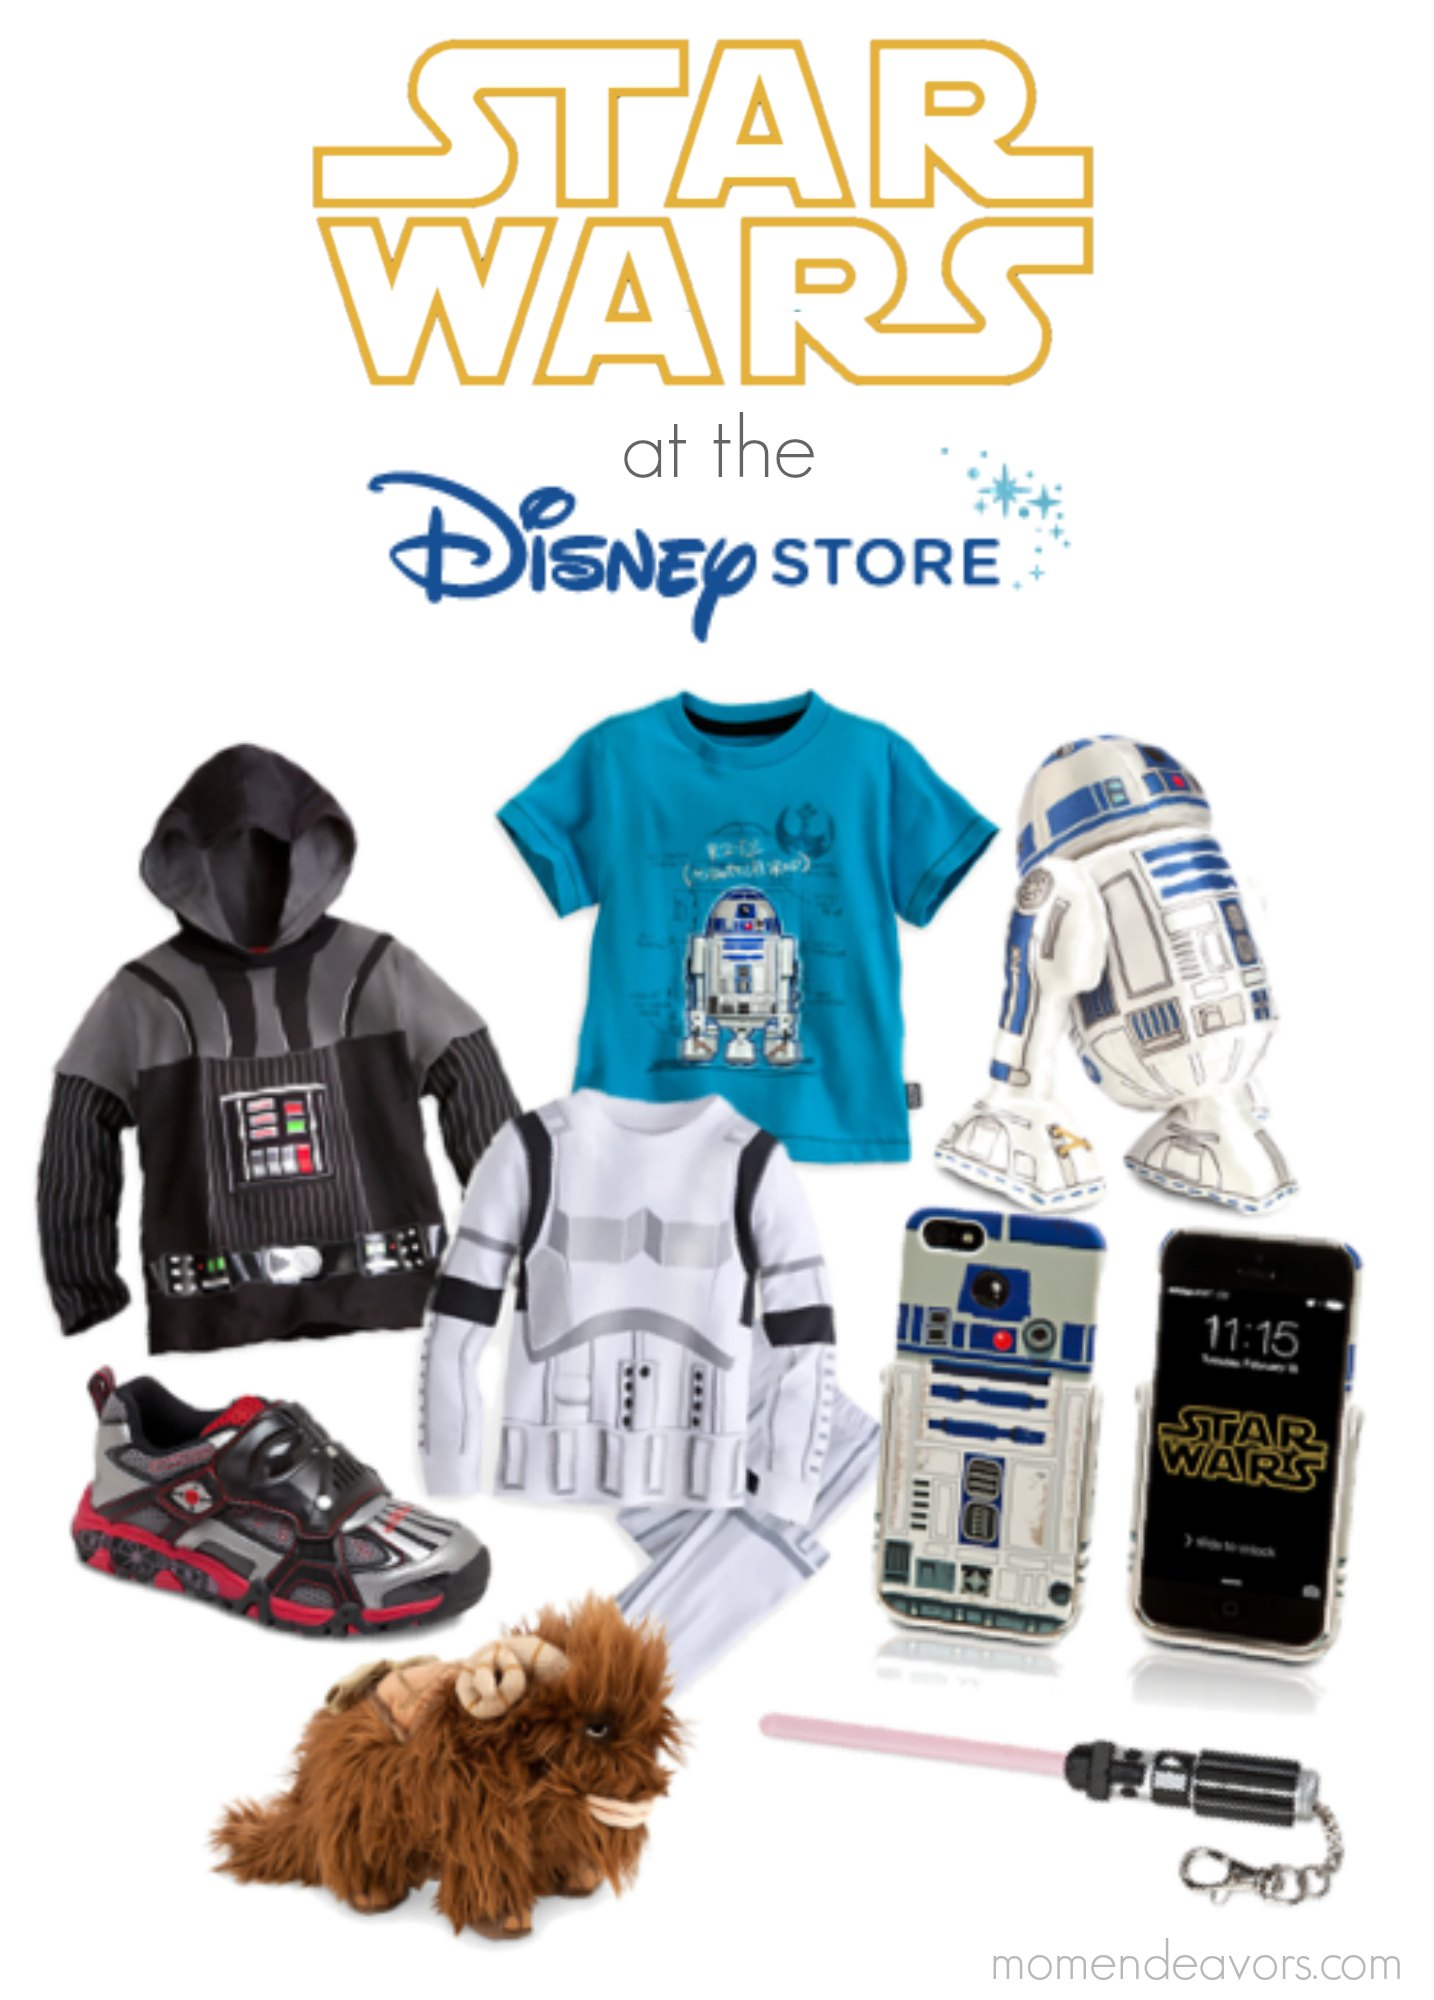 Star Wars at the Disney Store